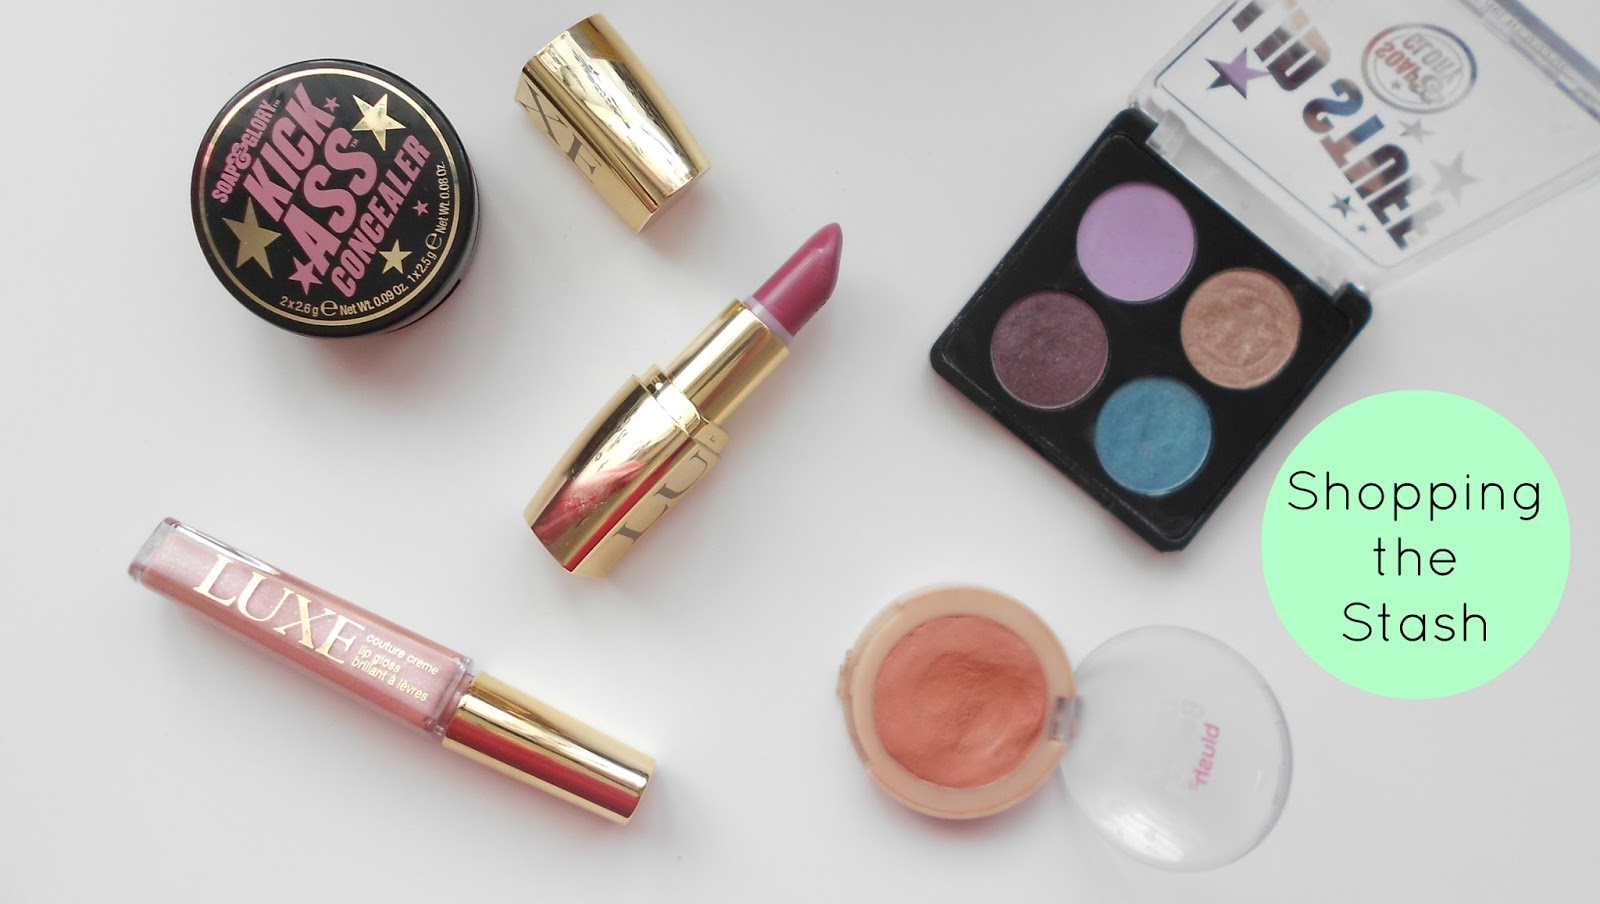 uk blog shopping the stash makeup spending ban